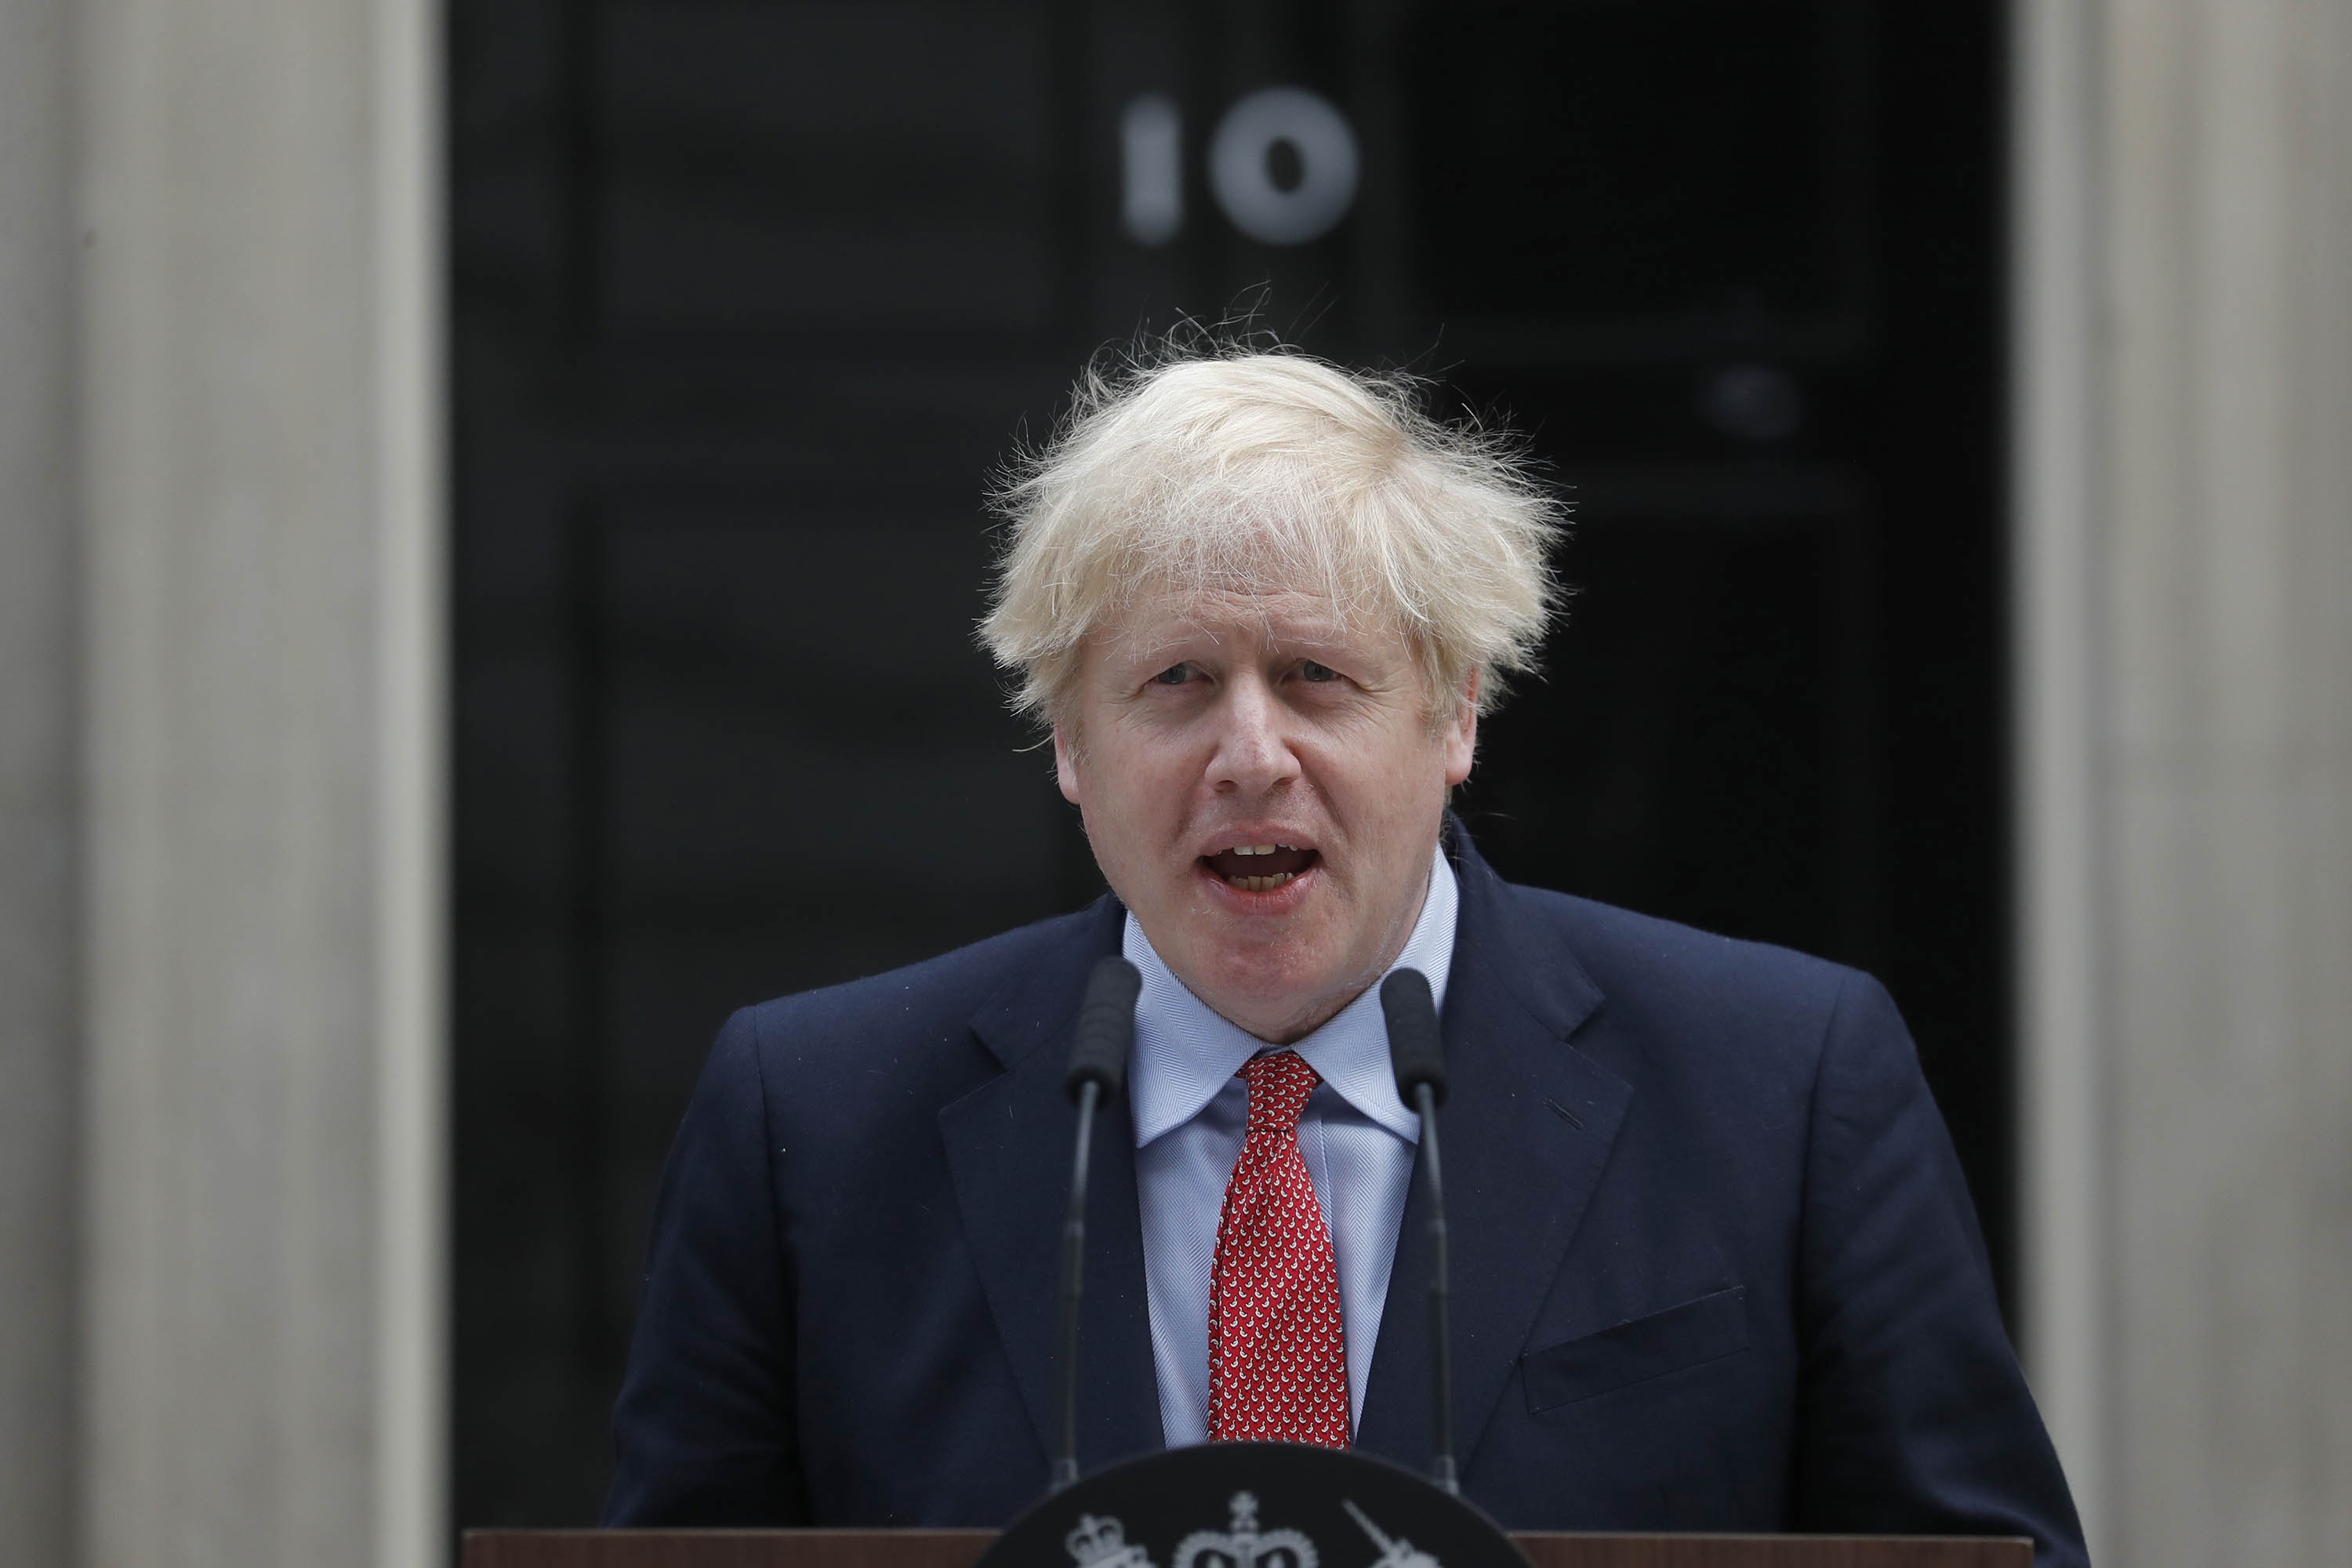 British Prime Minister Boris Johnson makes a statement at 10 Downing Street in London on Monday, April 27, his first day back at work after recovering from Covid-19.